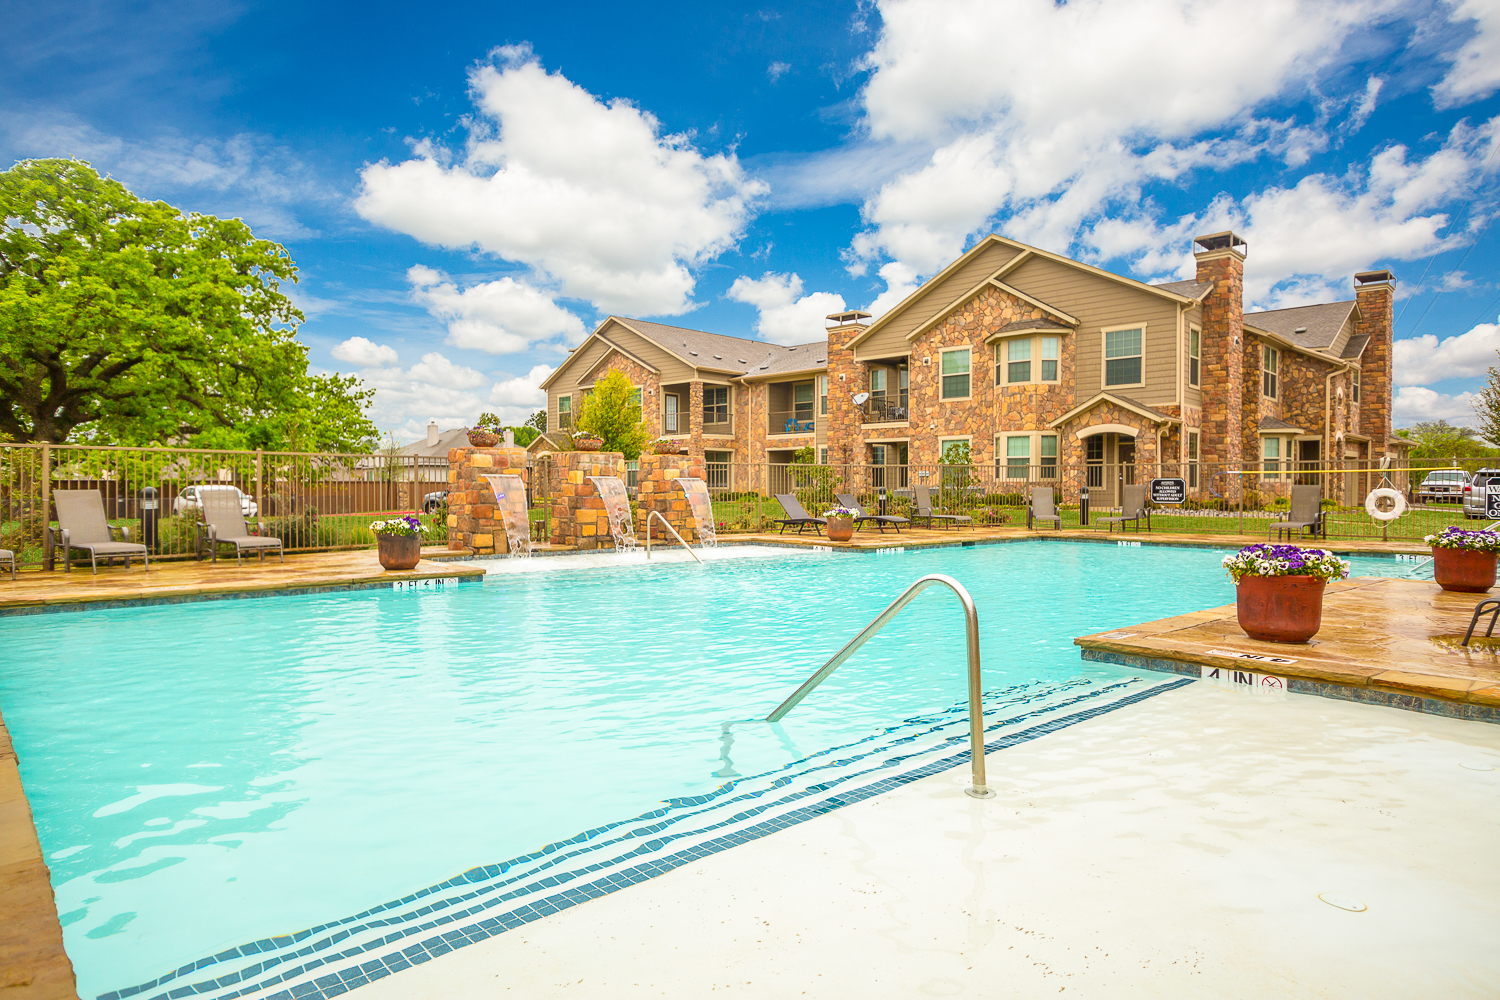 Apartments In Hickory Creek